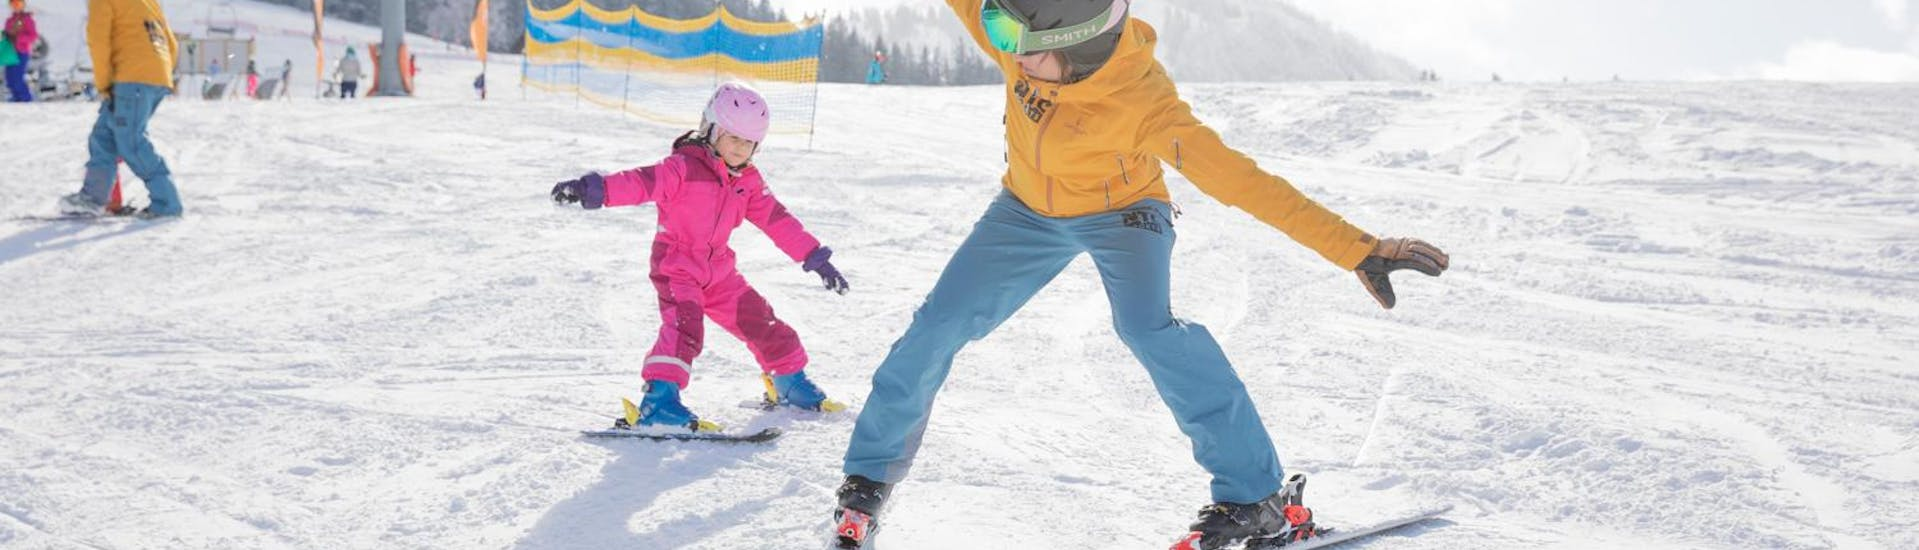 Private Ski Lesson for Kids for Advanced Skiers